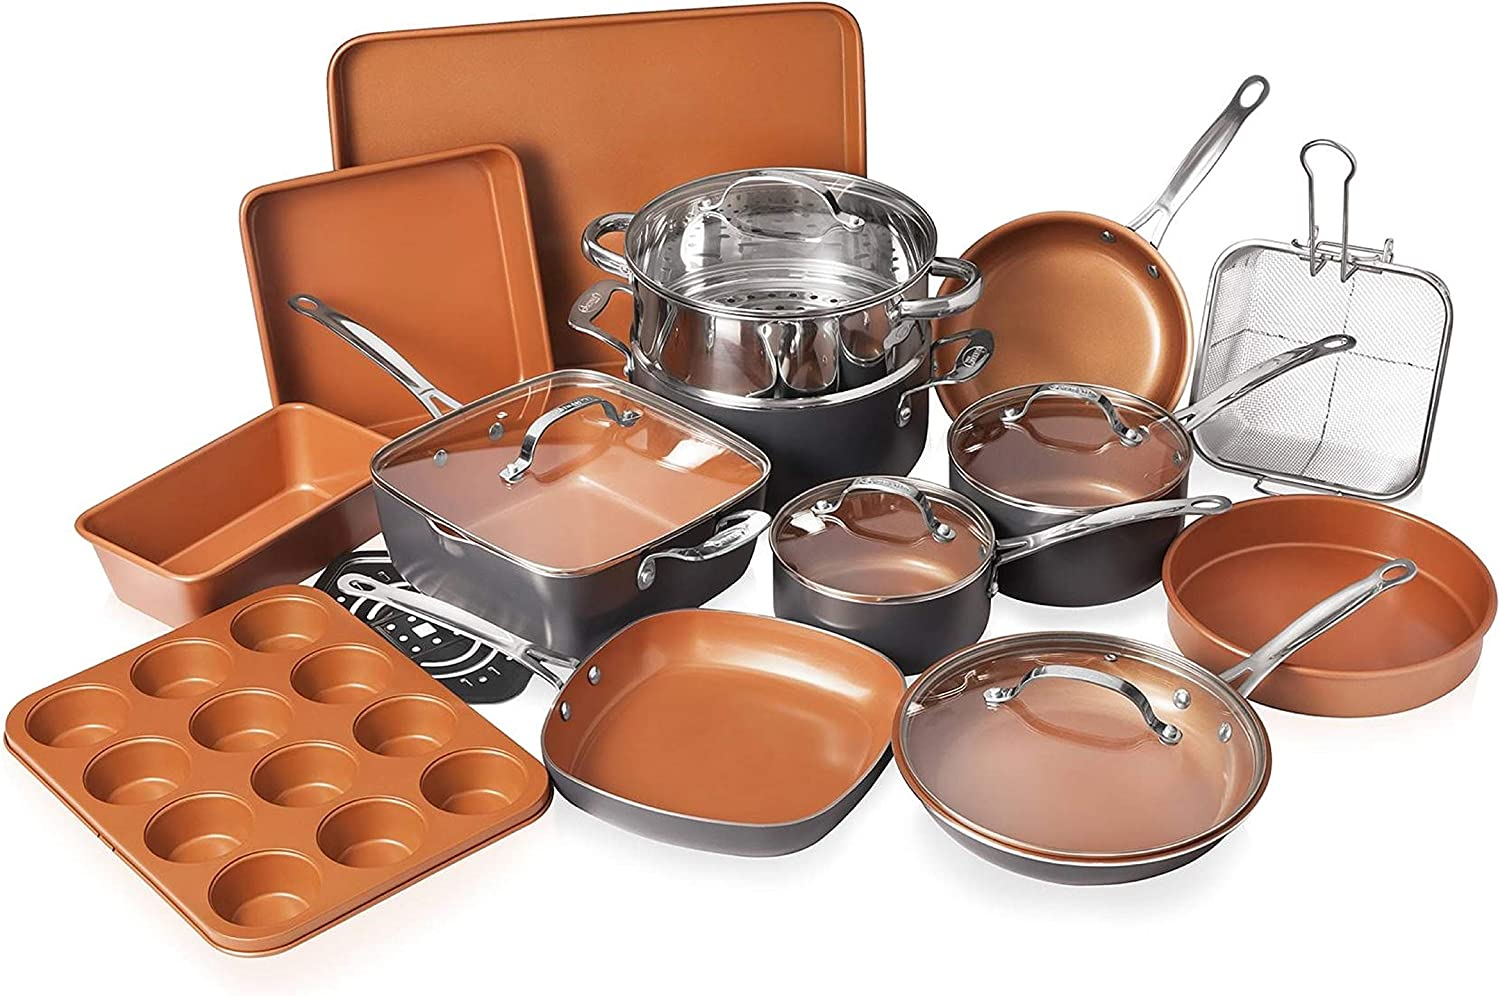 Gotham steel copper cookware